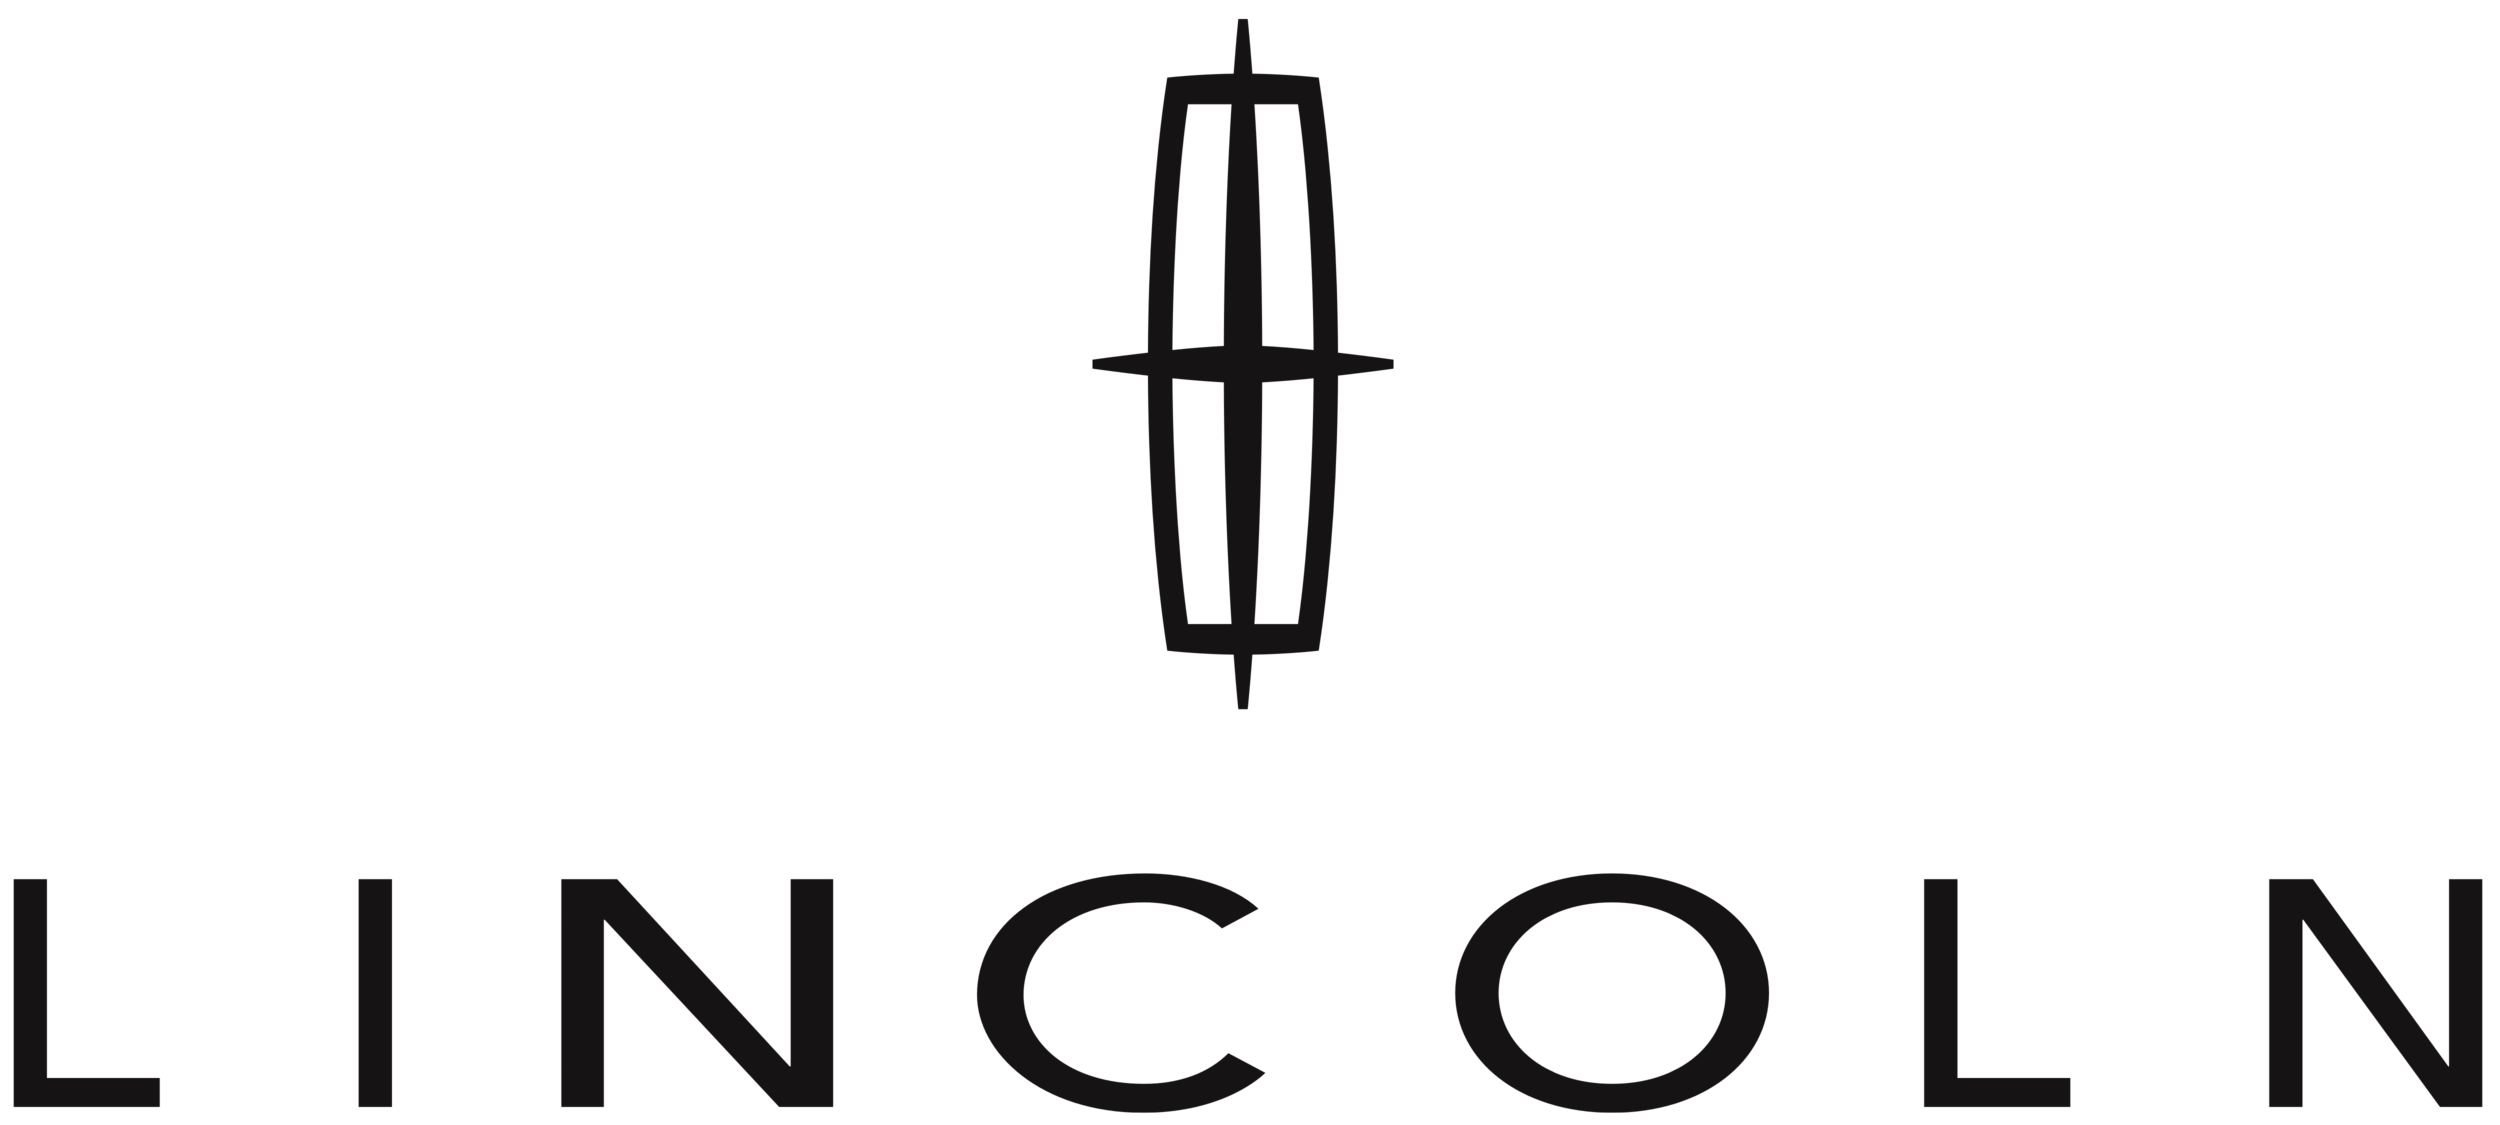 Lincoln_logo_1.png